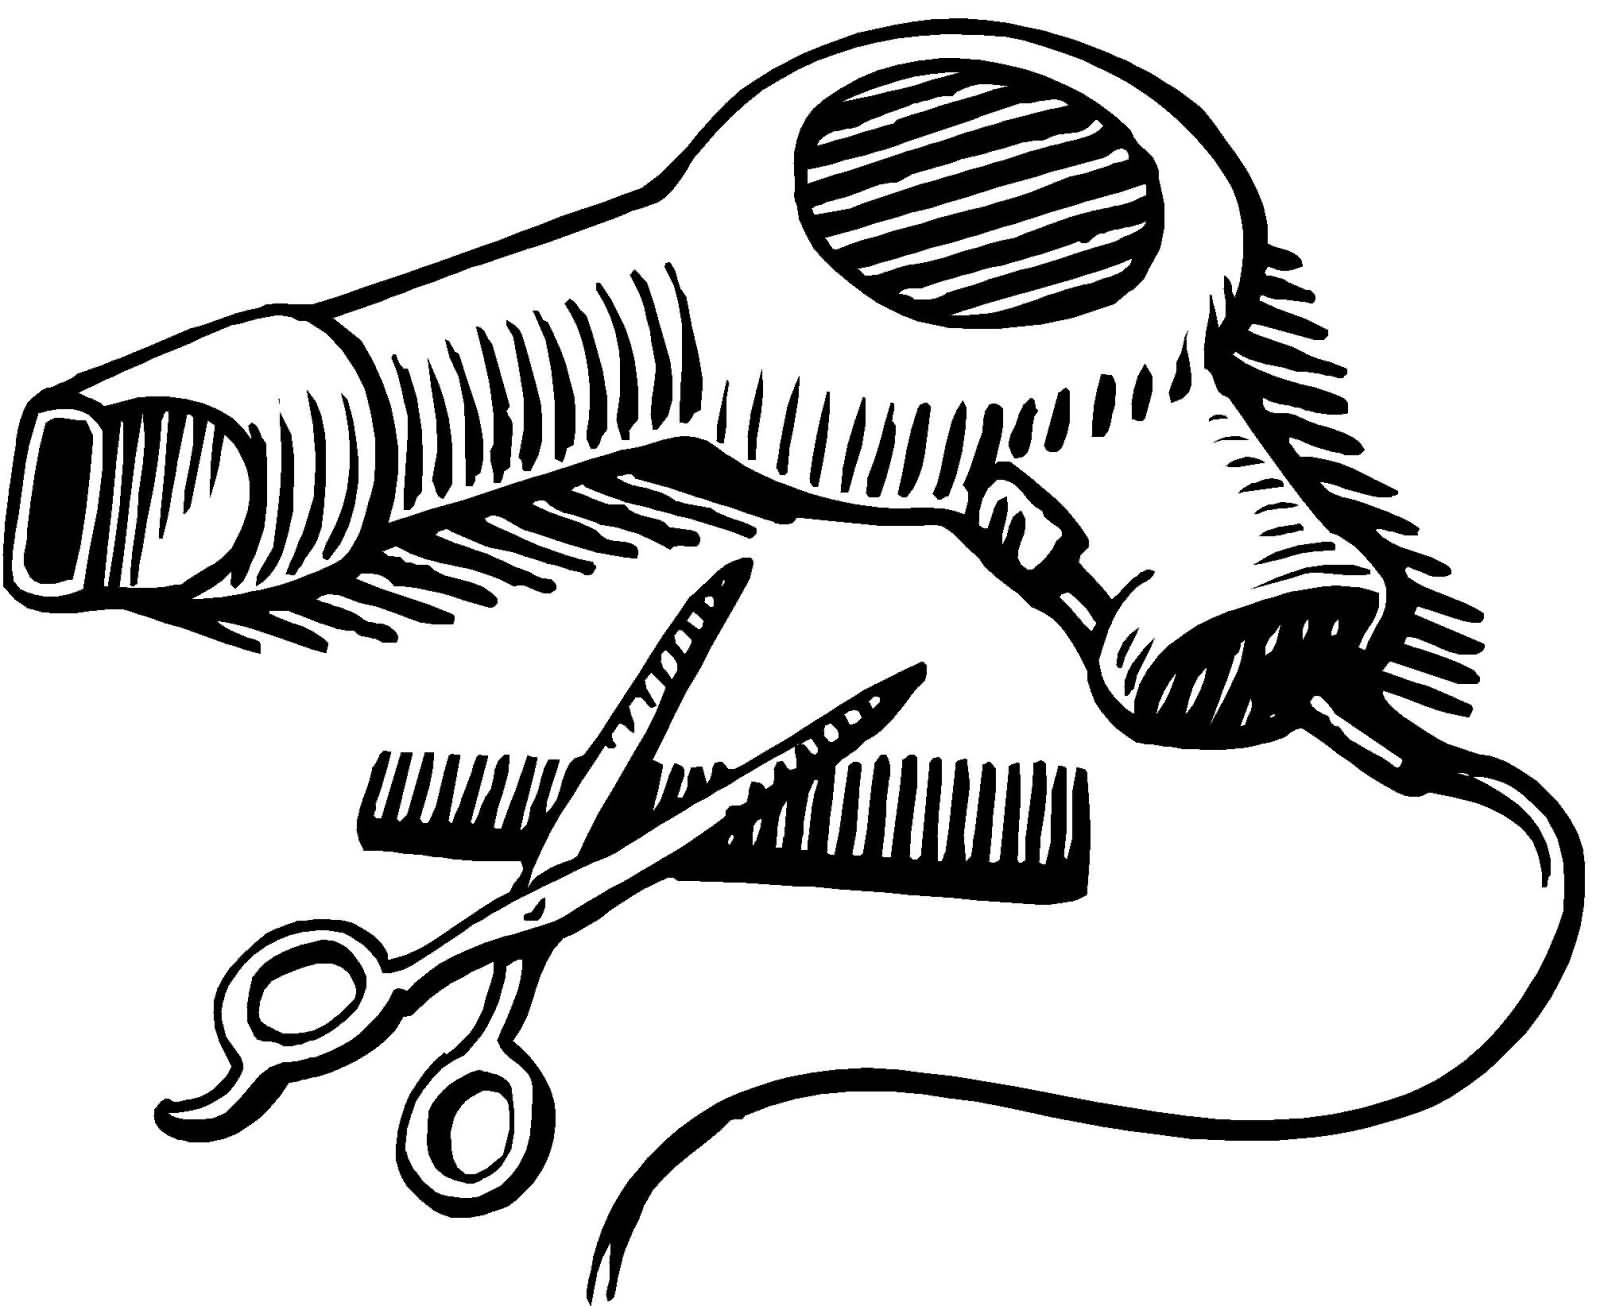 hight resolution of blow dryer and scissors clipart clipart blow dryer and scissors png